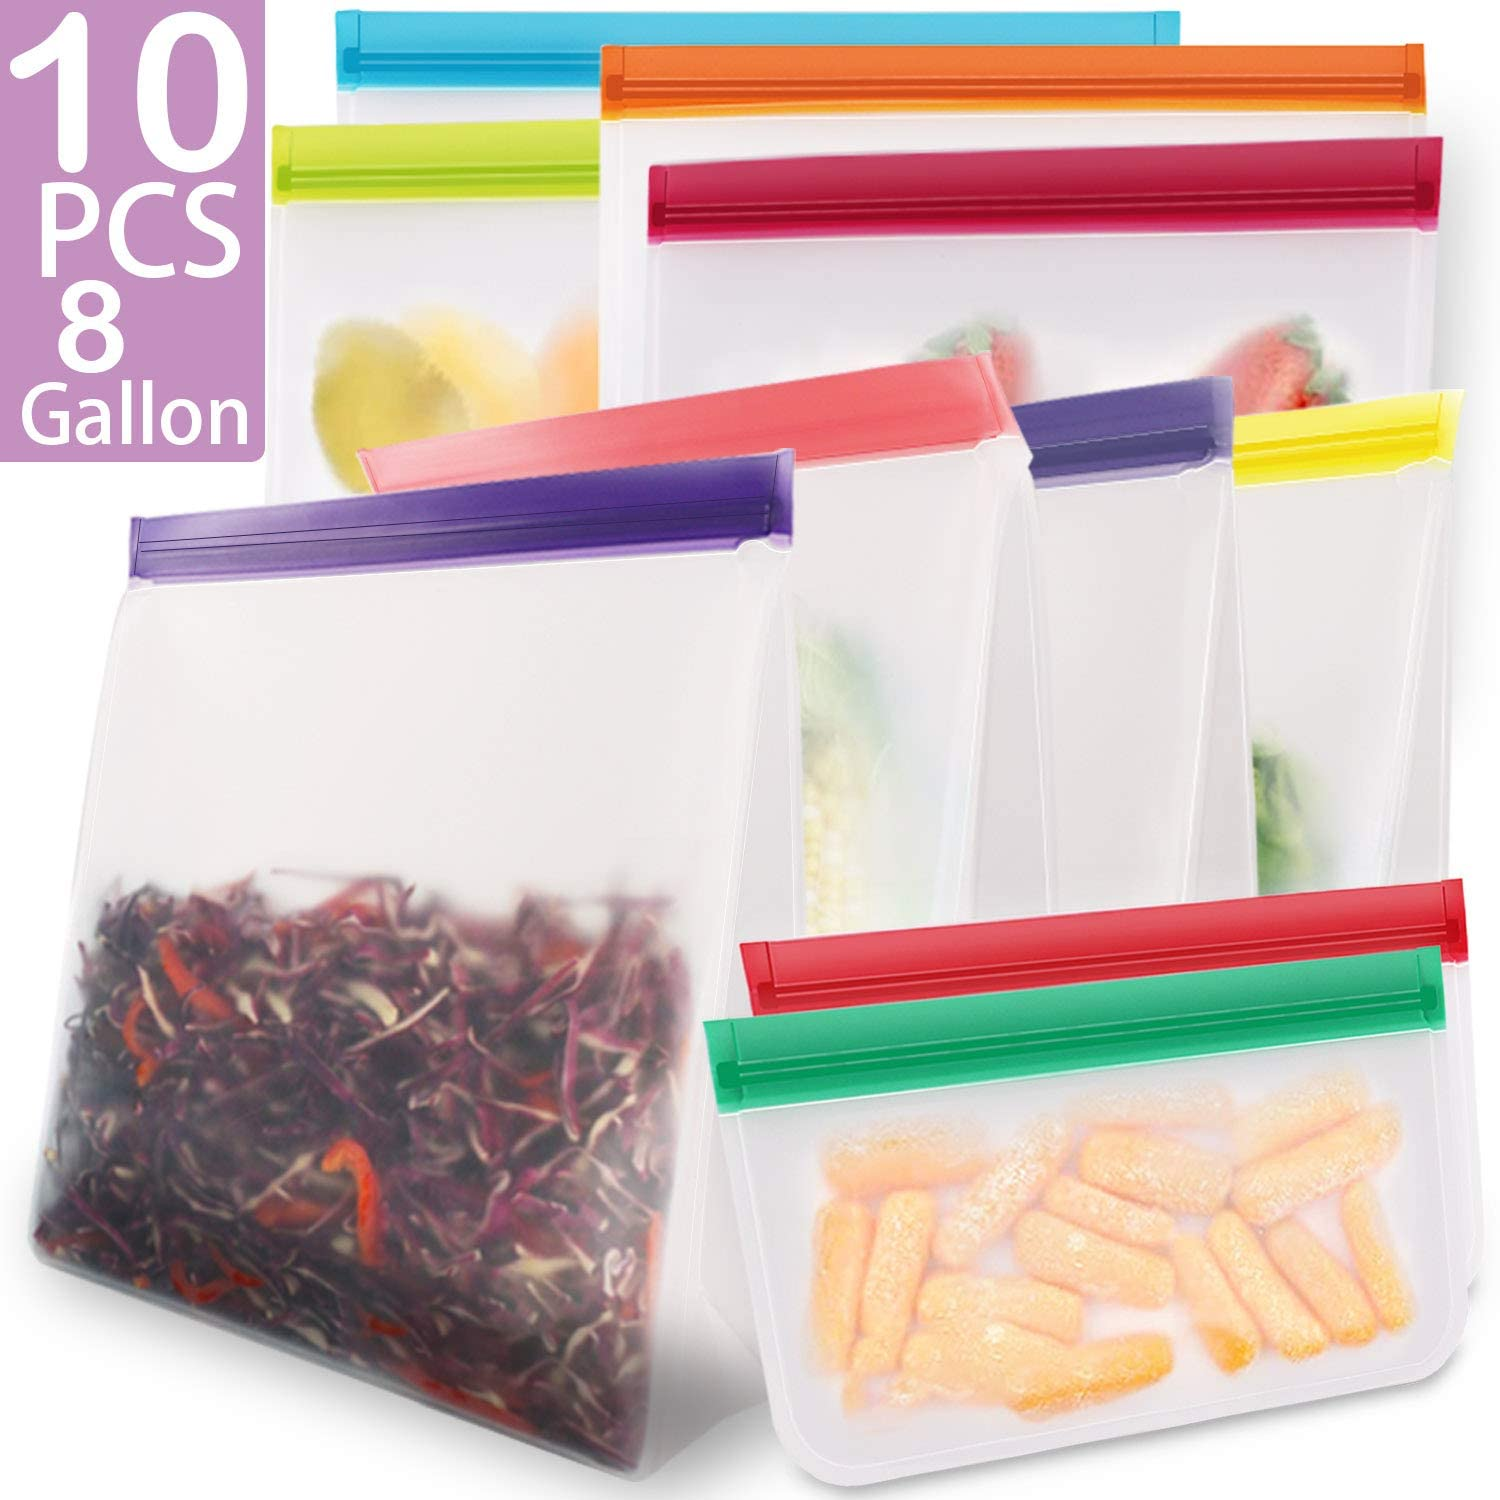 KYONANO Reusable Gallon Bags 8 Pack + Reusable Sandwich Bags 2 Pack, BPA Free Reusable Ziplock Freezer Bags, Leakproof Eco-Friendly Reusable Food Storage Bags for Snack Fruit Marinate Meat